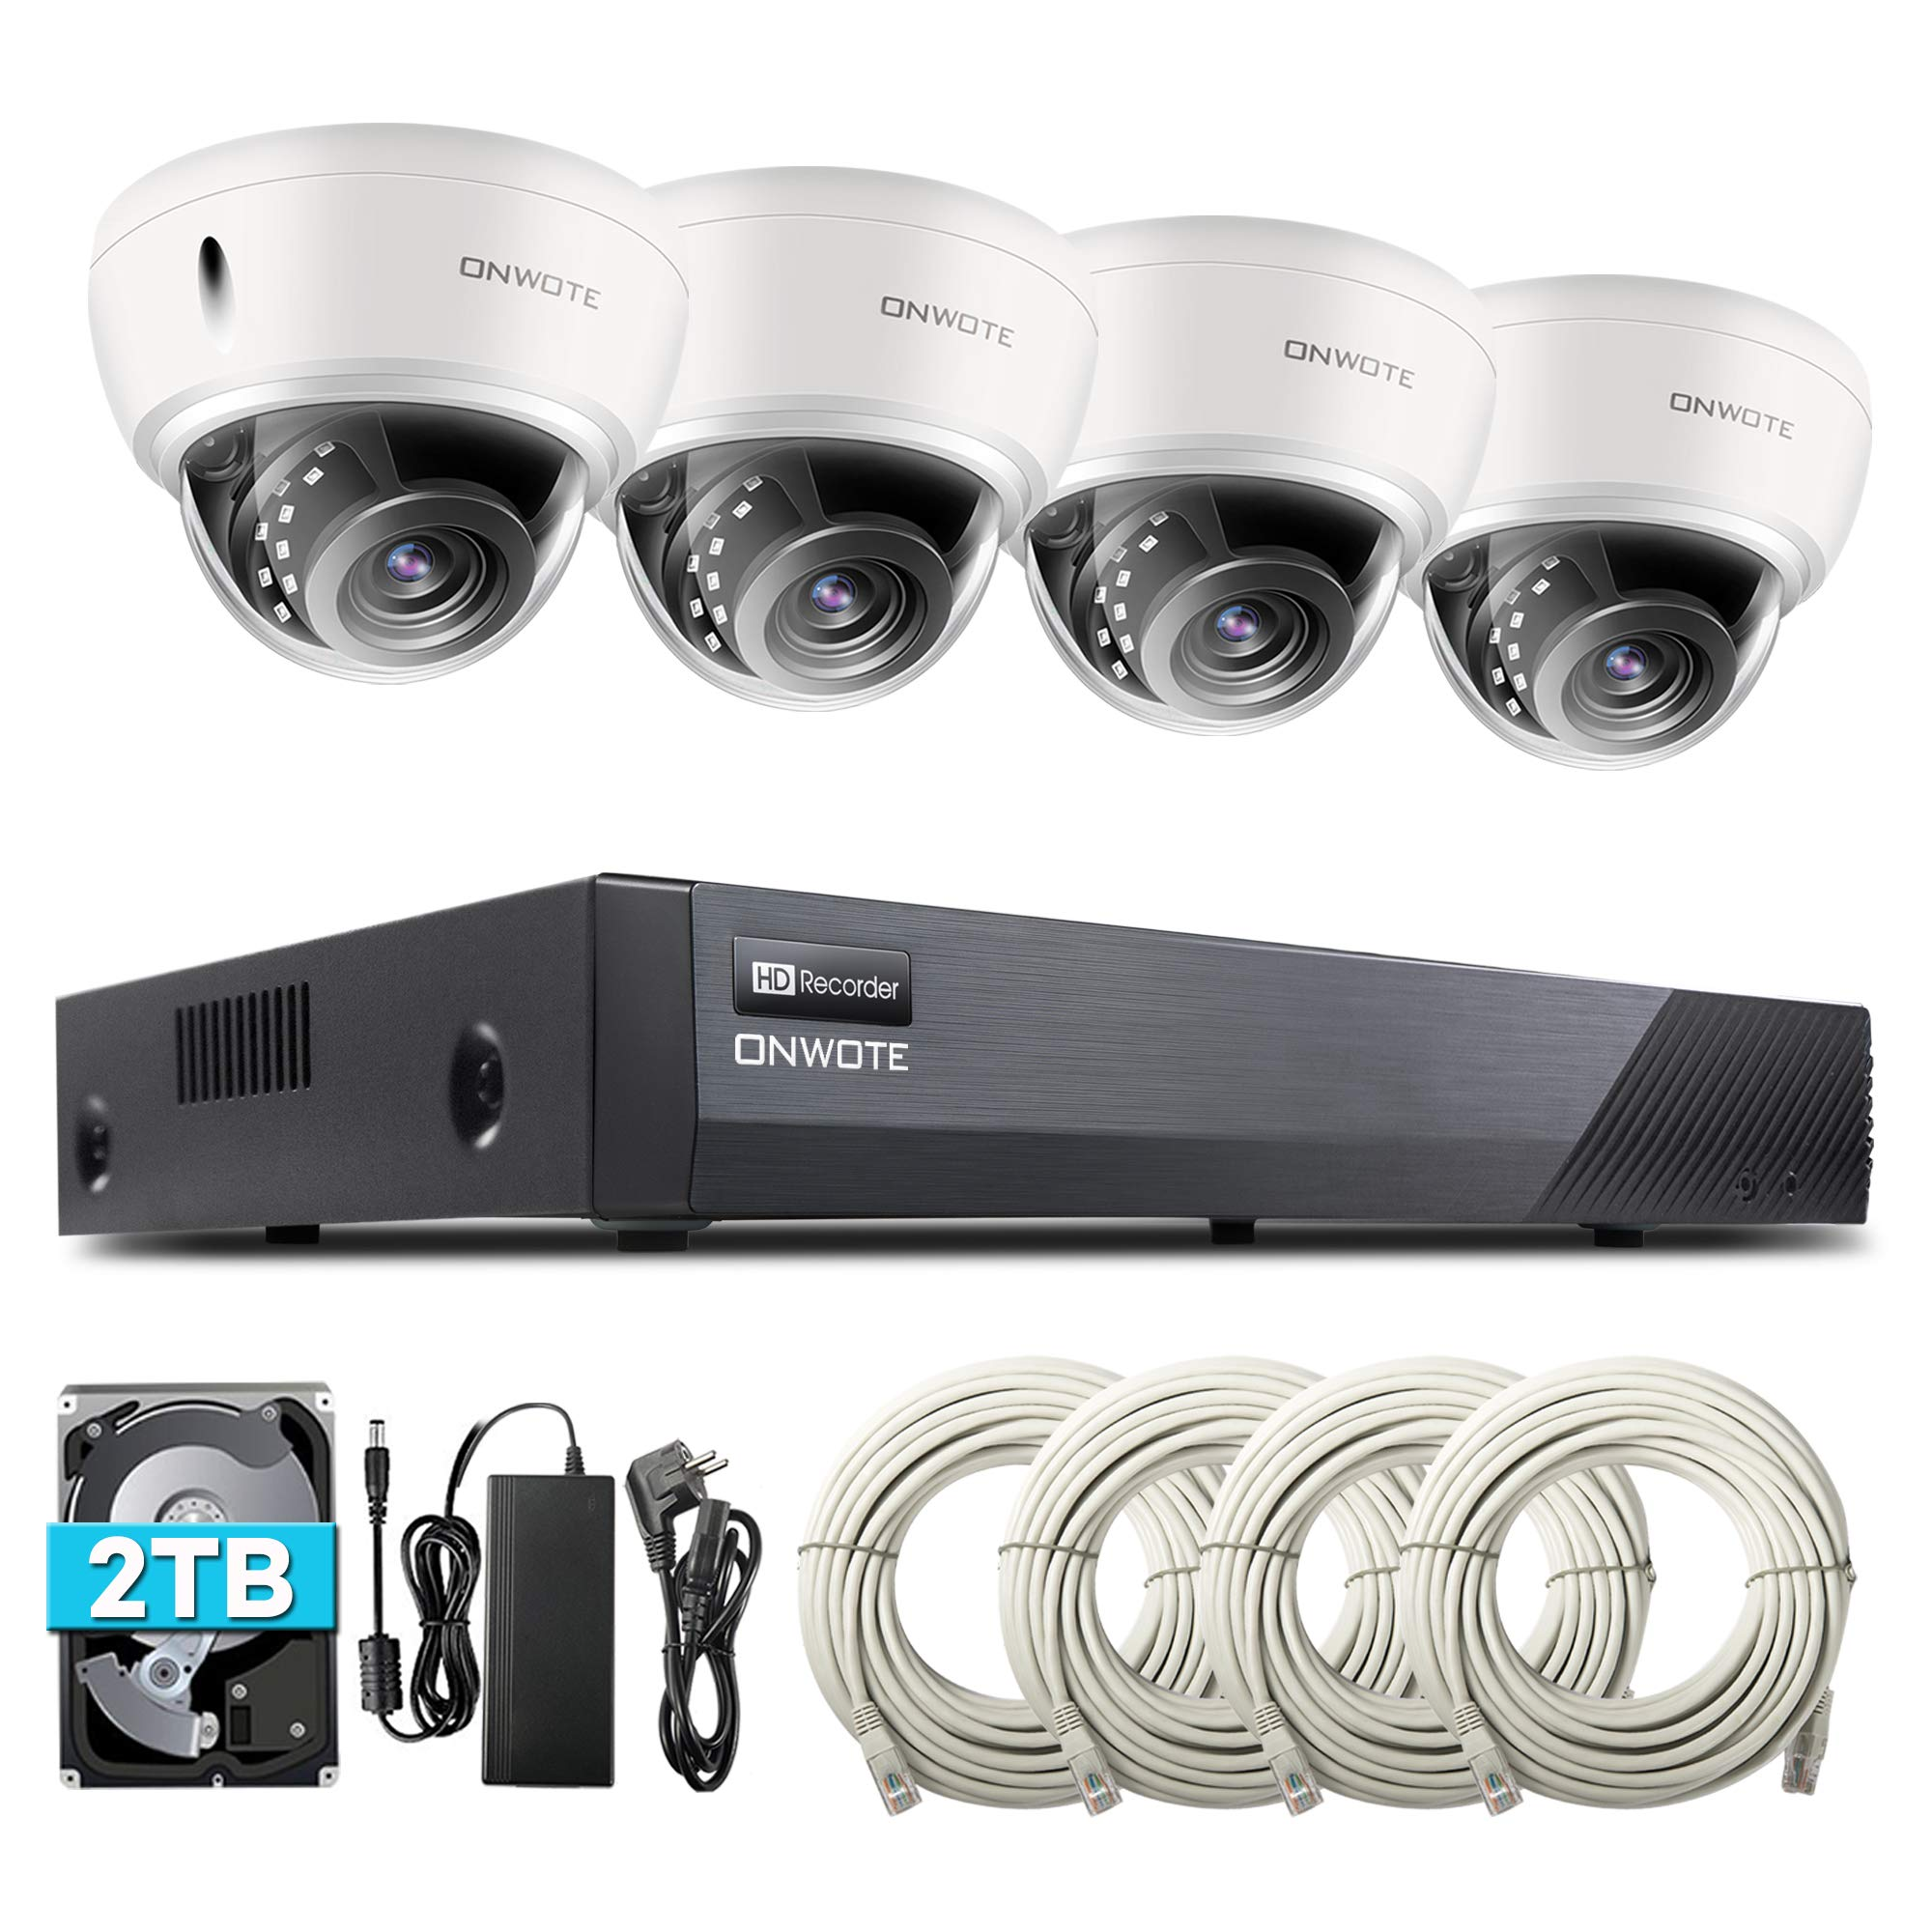 ONWOTE 8CH 5MP PoE Security Camera System with Audio, Vandal-Proof Dome, 4 Outdoor 5MP 2592x1944P 100ft IR PoE IP Security Cameras, 8 Channel 5MP H.265 NVR 2TB HDD, Add 4 More Cameras, Onvif